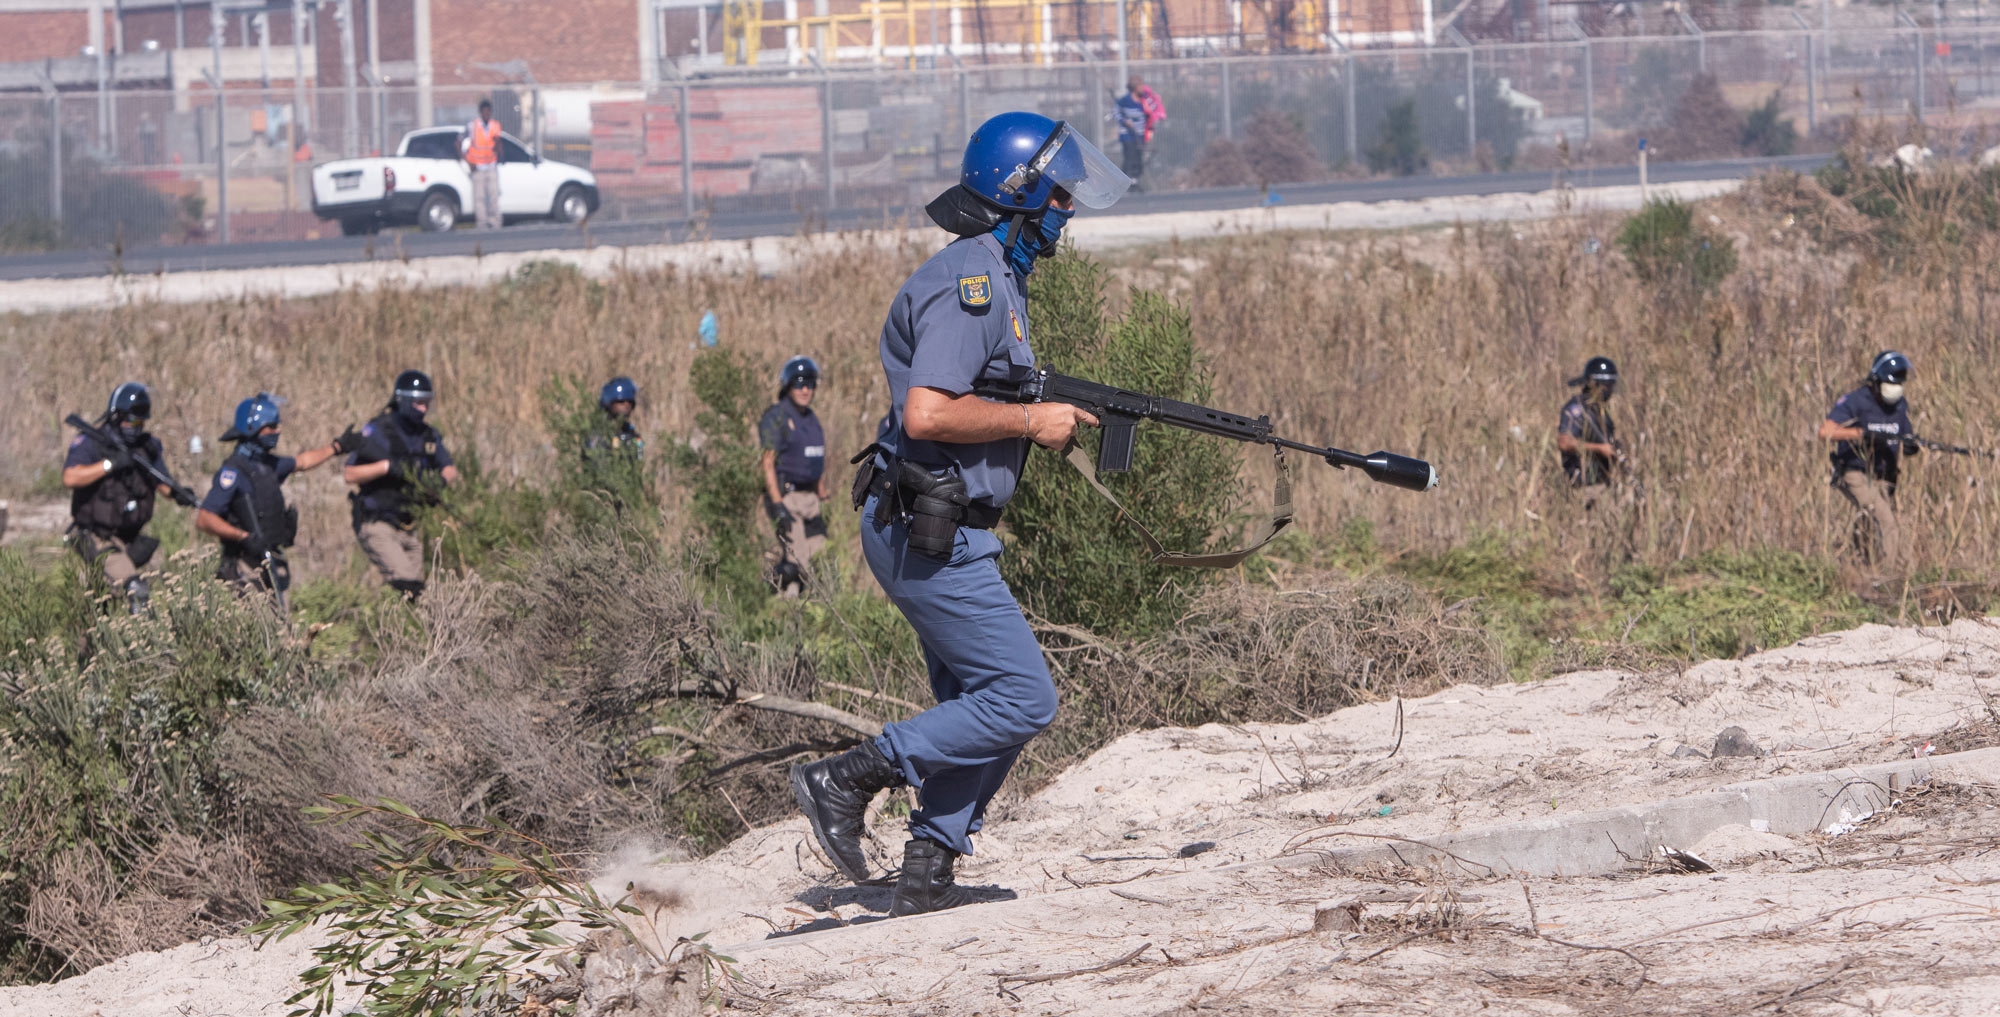 21 April 2020: Public order police and members of the Cape Town Metro Police clash with civilians in the Empolweni shack settlement who had started building structures on private land during the lockdown. (Photograph by Brenton Geach/ Gallo Images via Getty Images)